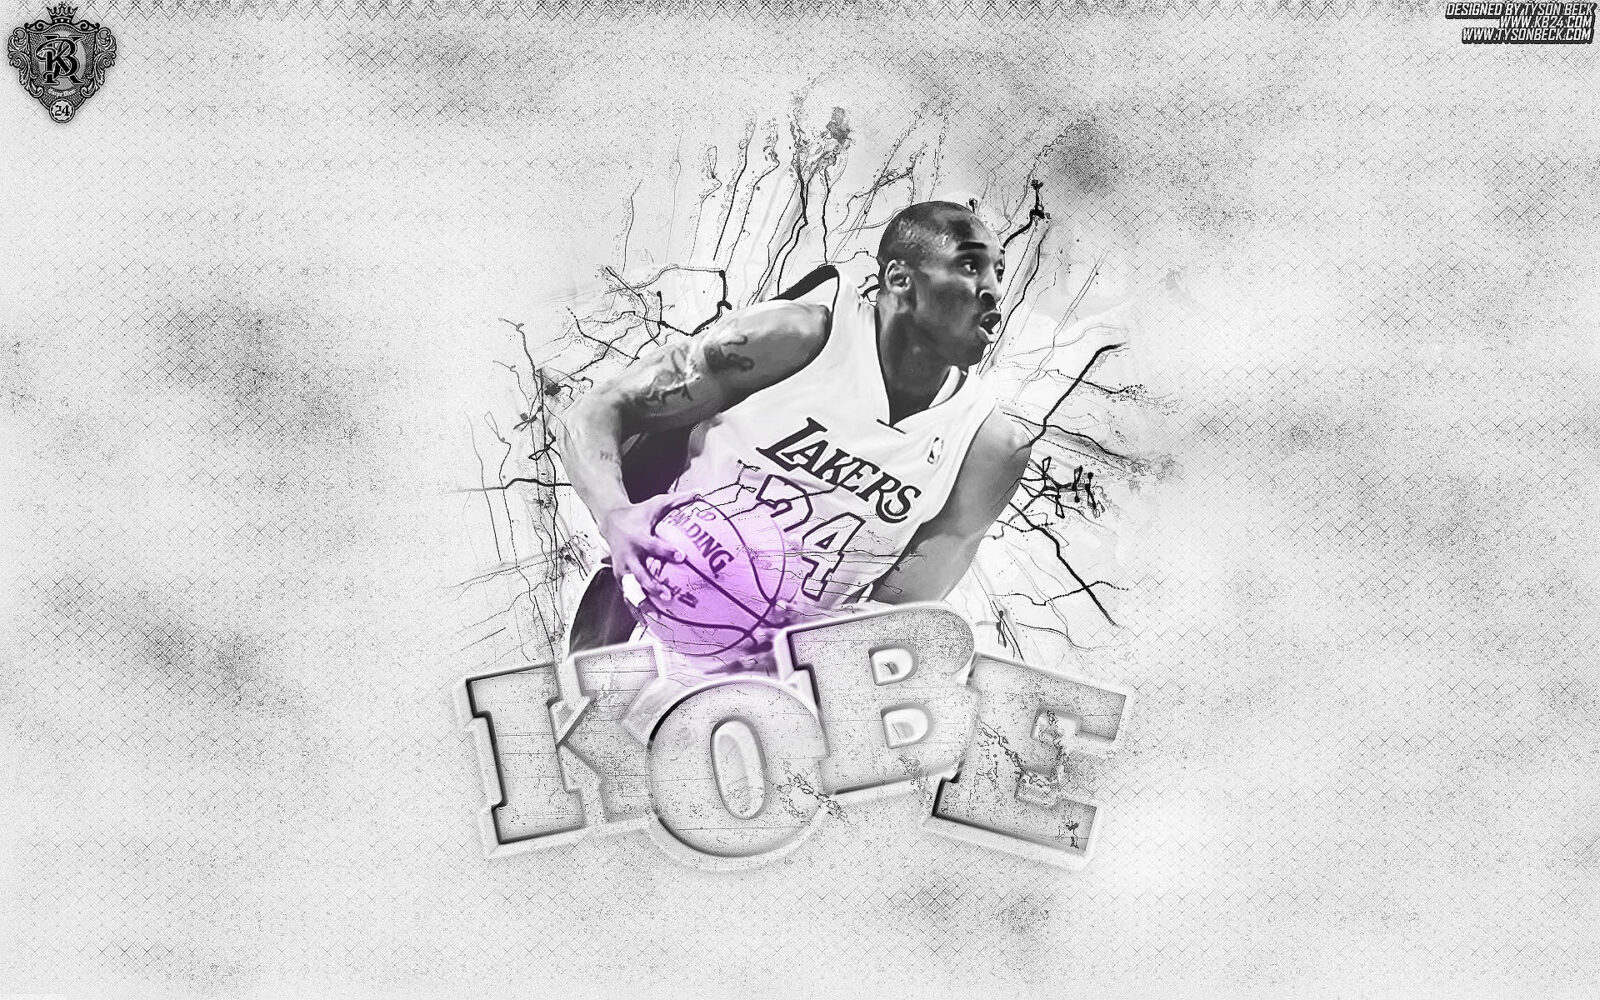 Kyrie Irving Wallpaper Iphone 45 Kobe Bryant Wallpapers Hd Download